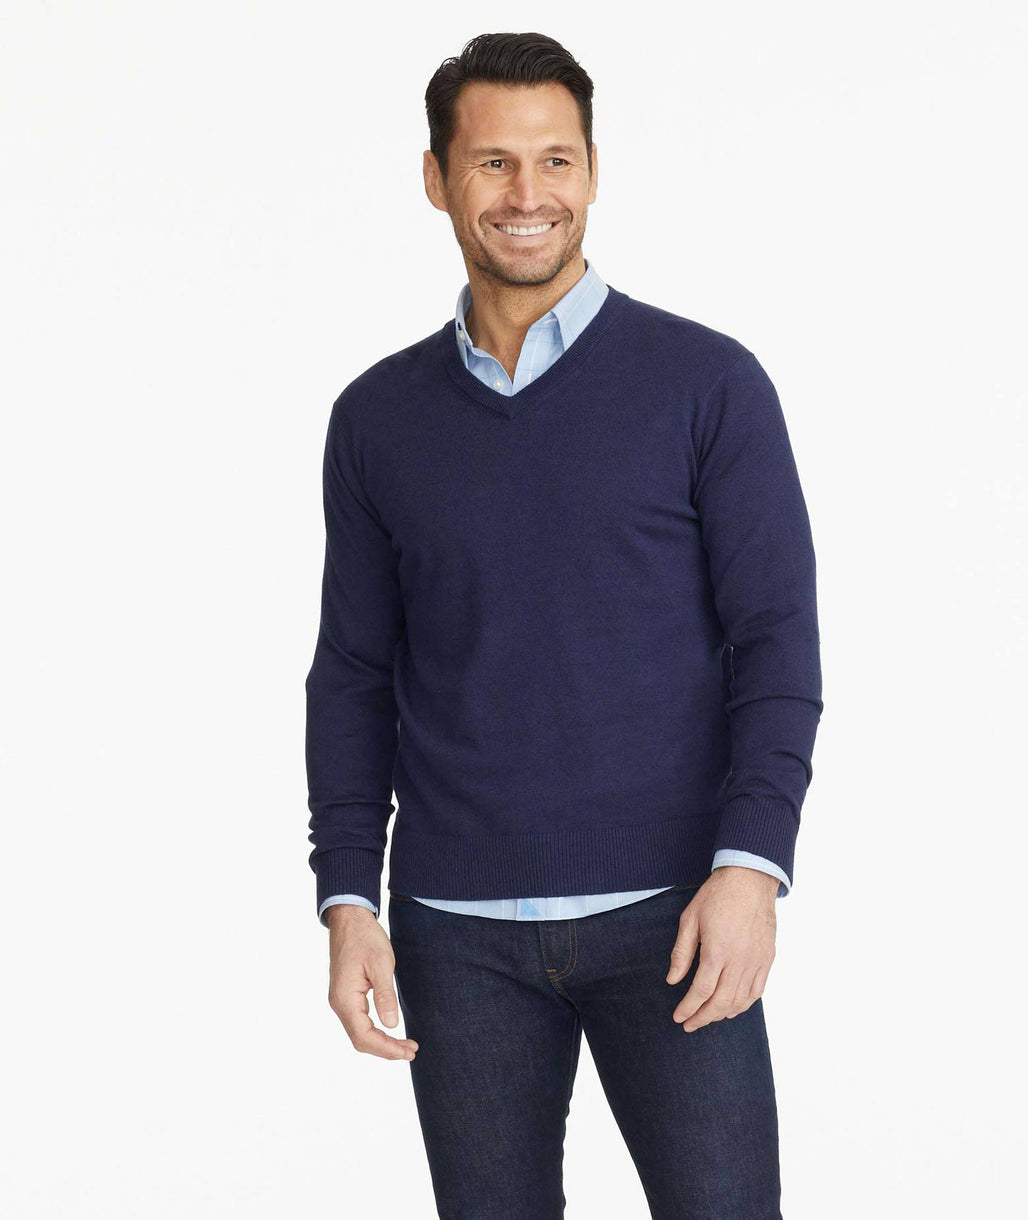 Model wearing a Blue Cotton-Linen V-Neck Sweater